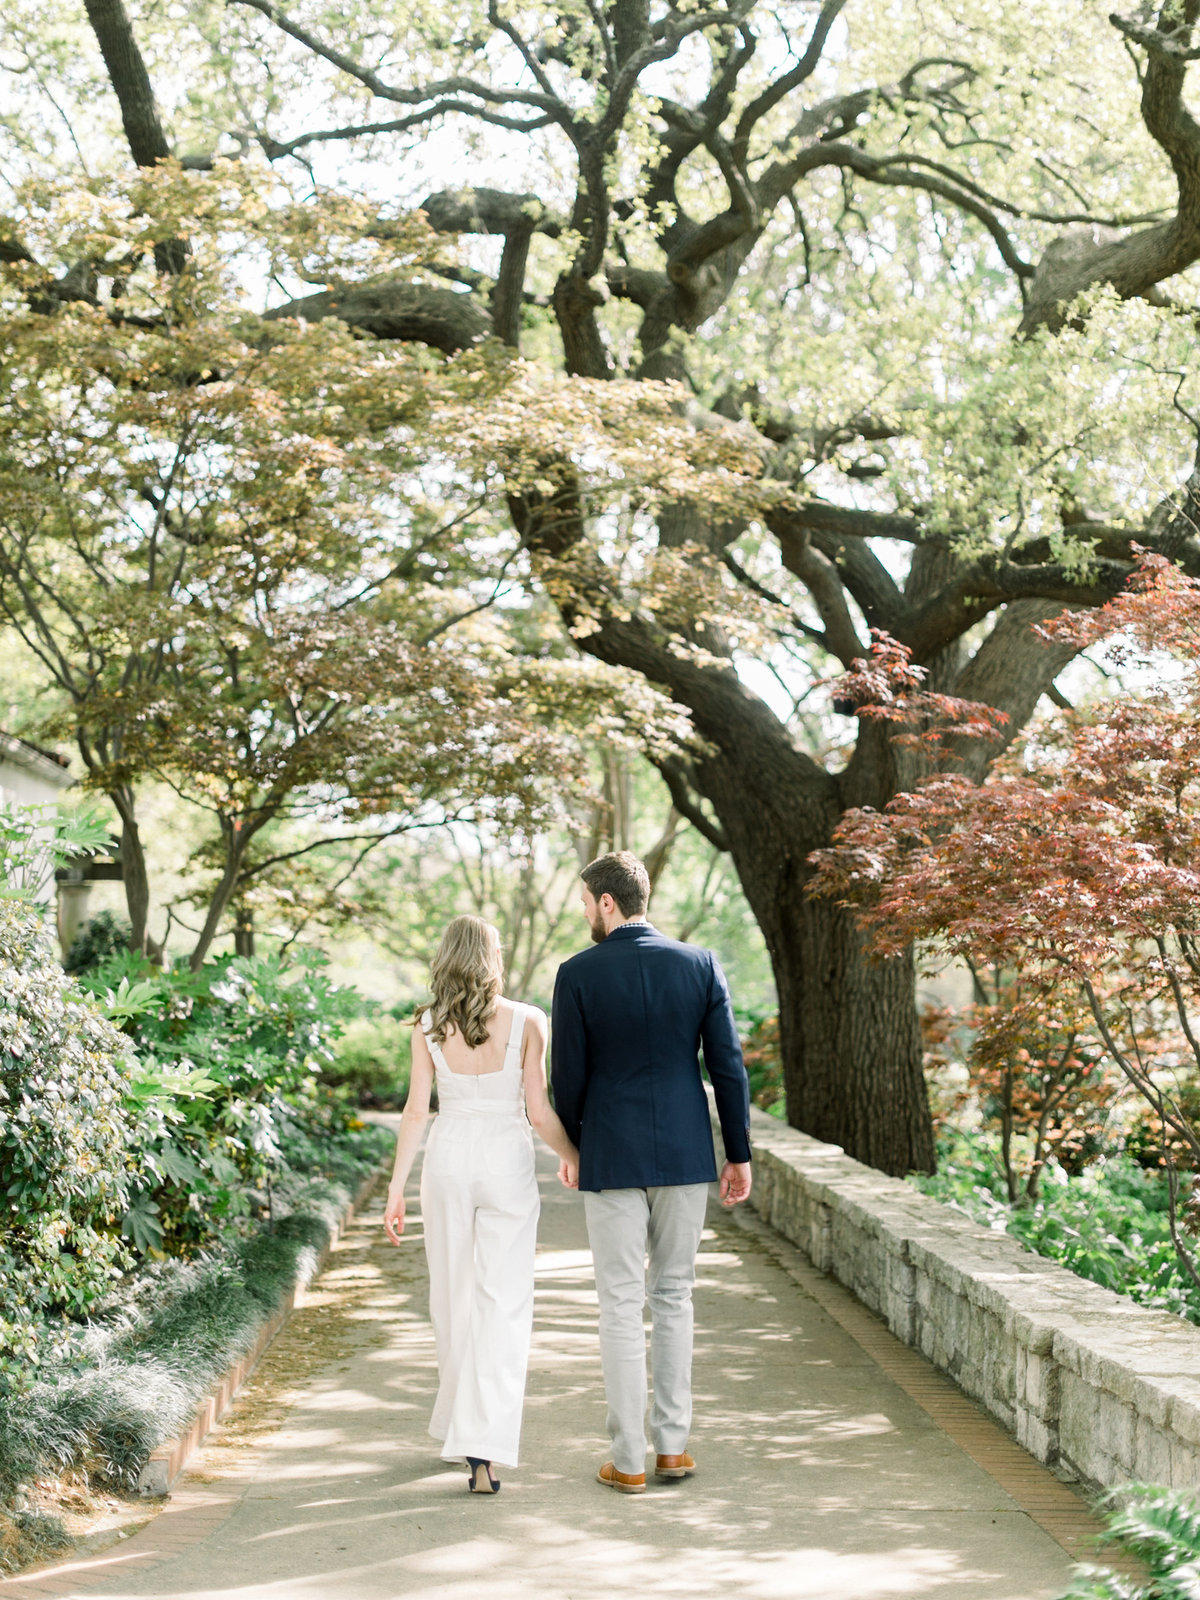 Courtney Hanson Photography - Dallas Spring Engagement Photos at Dallas Arboretum-2725